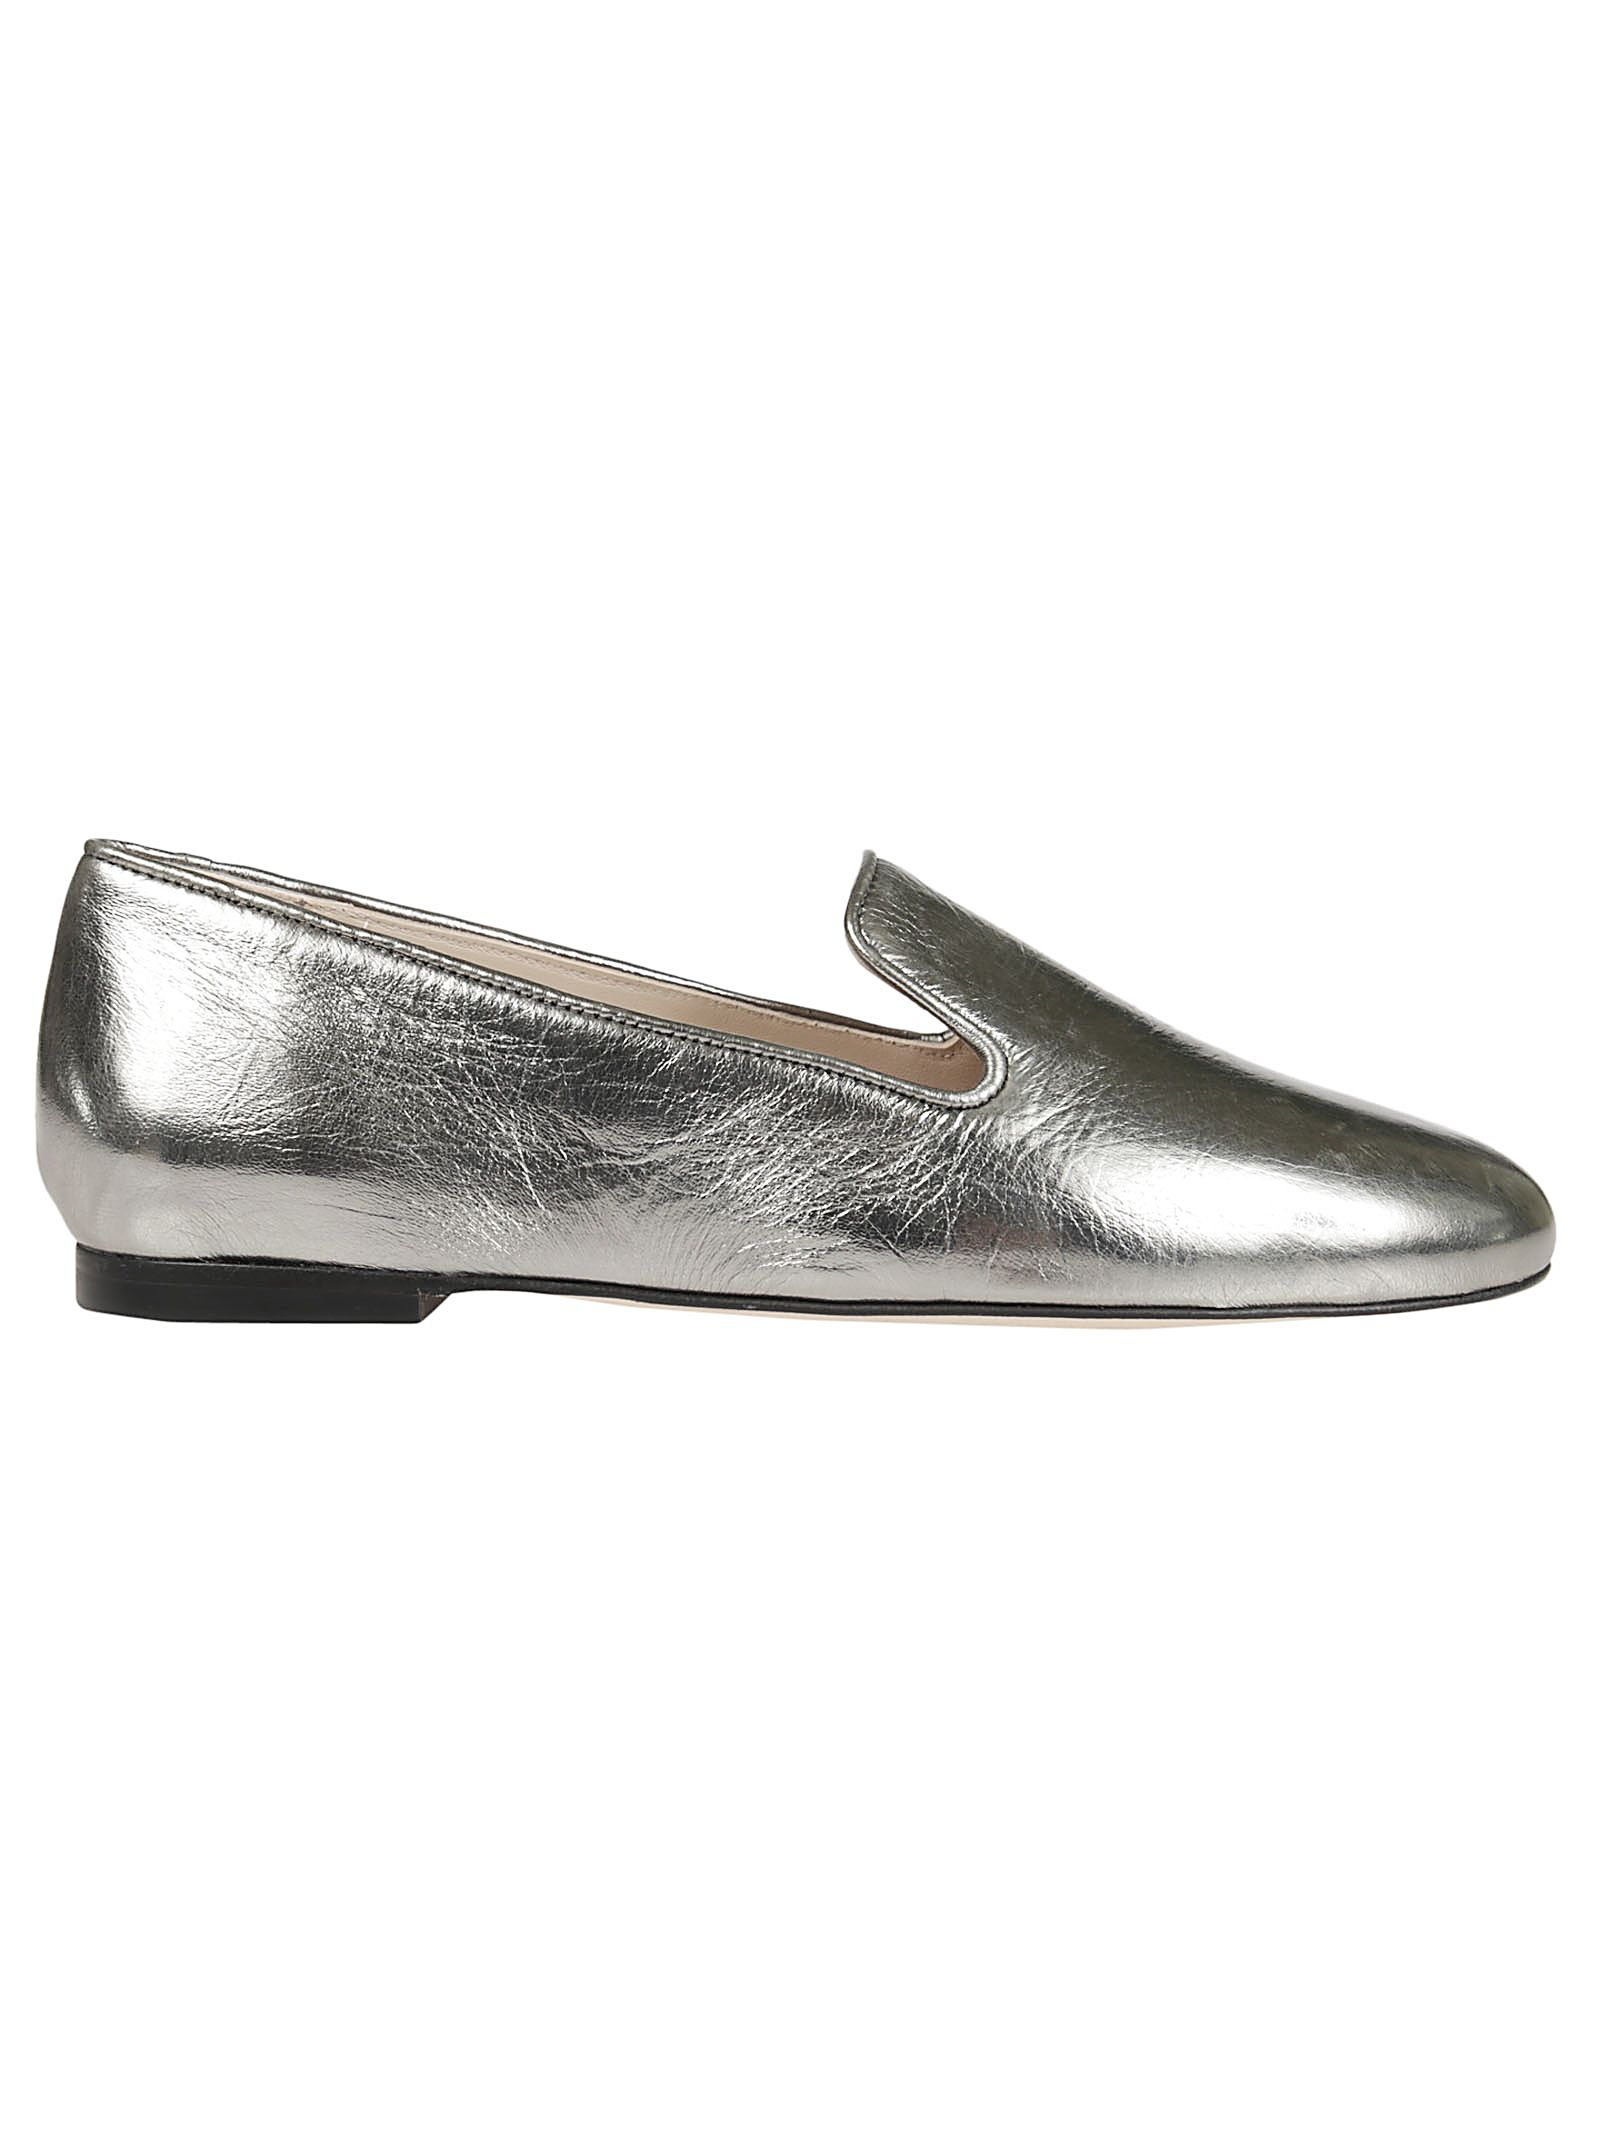 My Guy slippers - Metallic Stuart Weitzman 82Gfmn